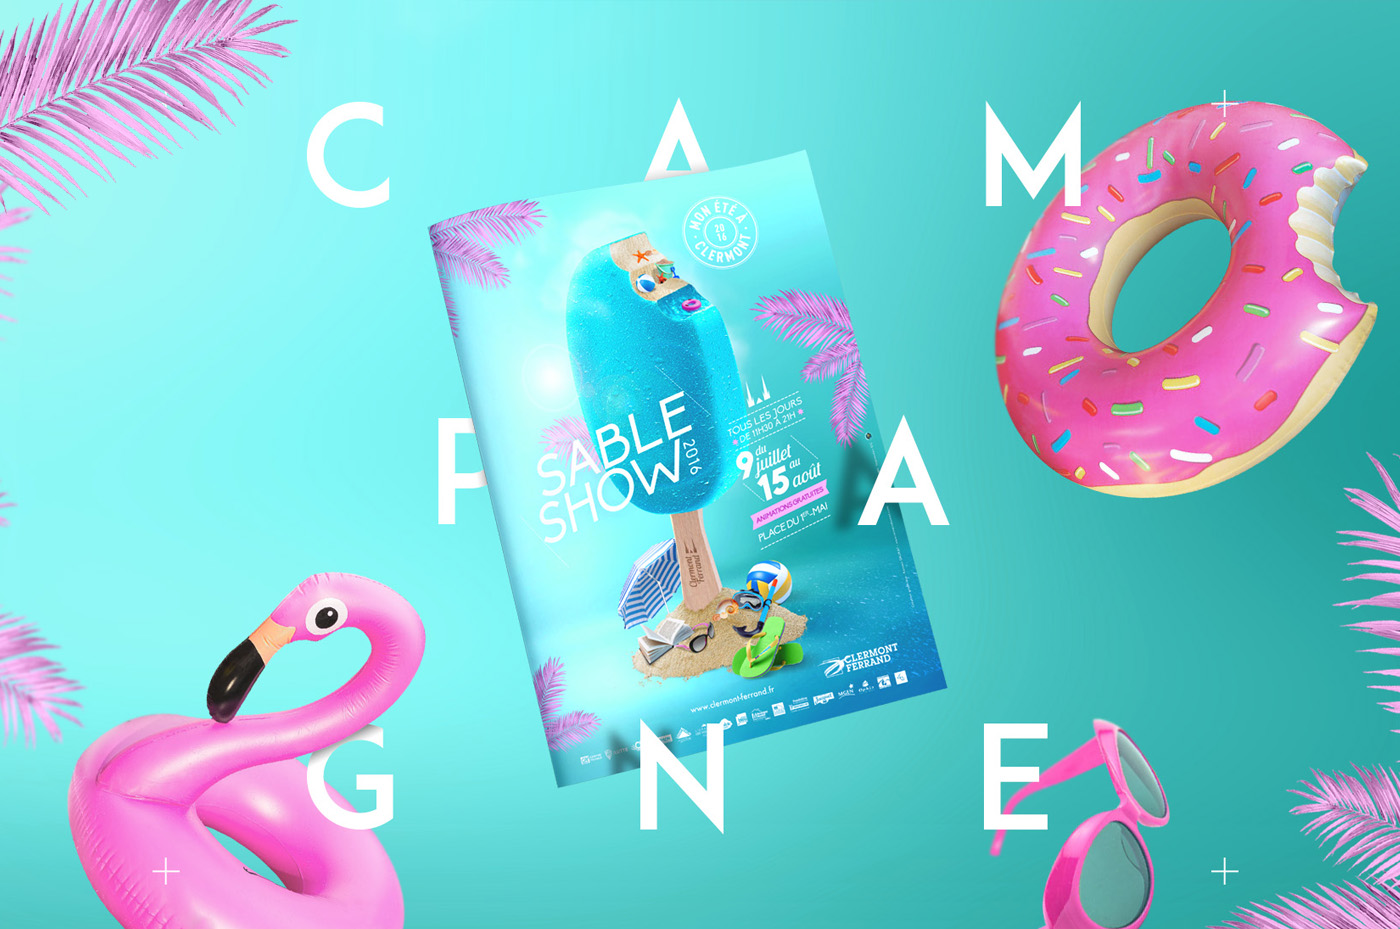 Campagne Sable Show